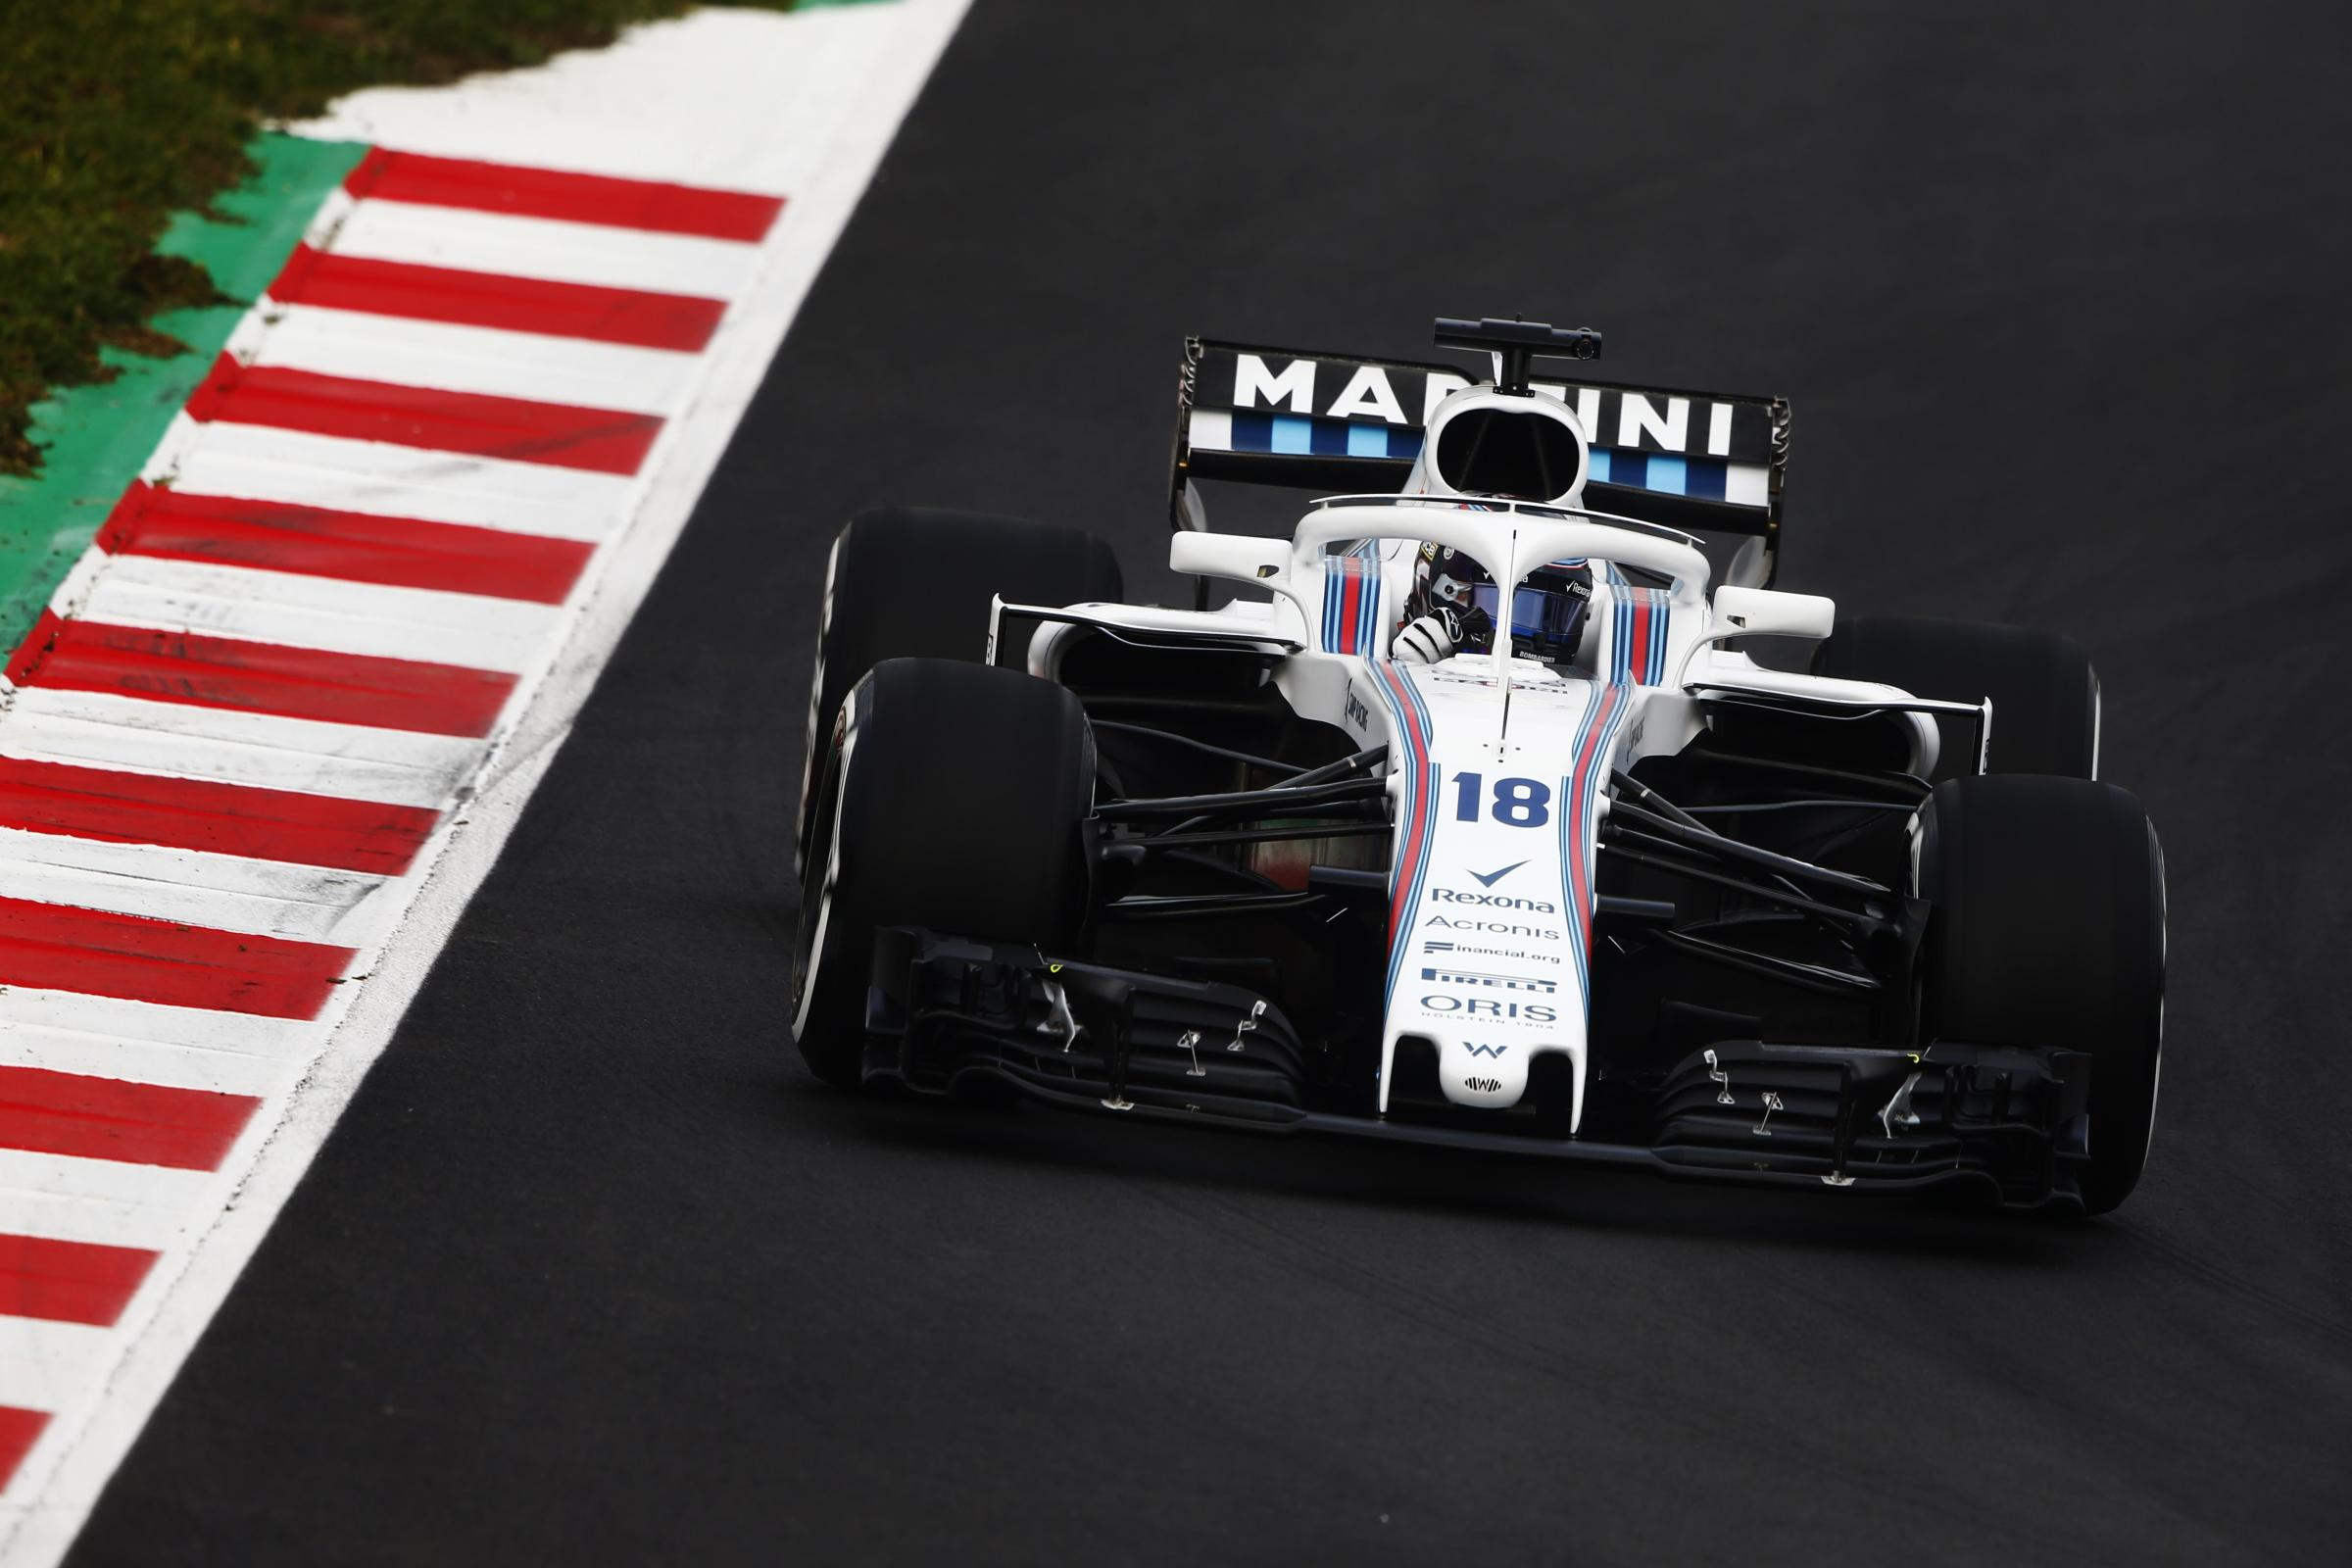 BACK TO BUSINESS: Williams driver Lance Stroll puts the FW41 through its paces during the first day of testing at the Circuit de Catalunya in Barcelona, admitting he has high expectations in 2018 Picture: Andy Hone/Williams F1